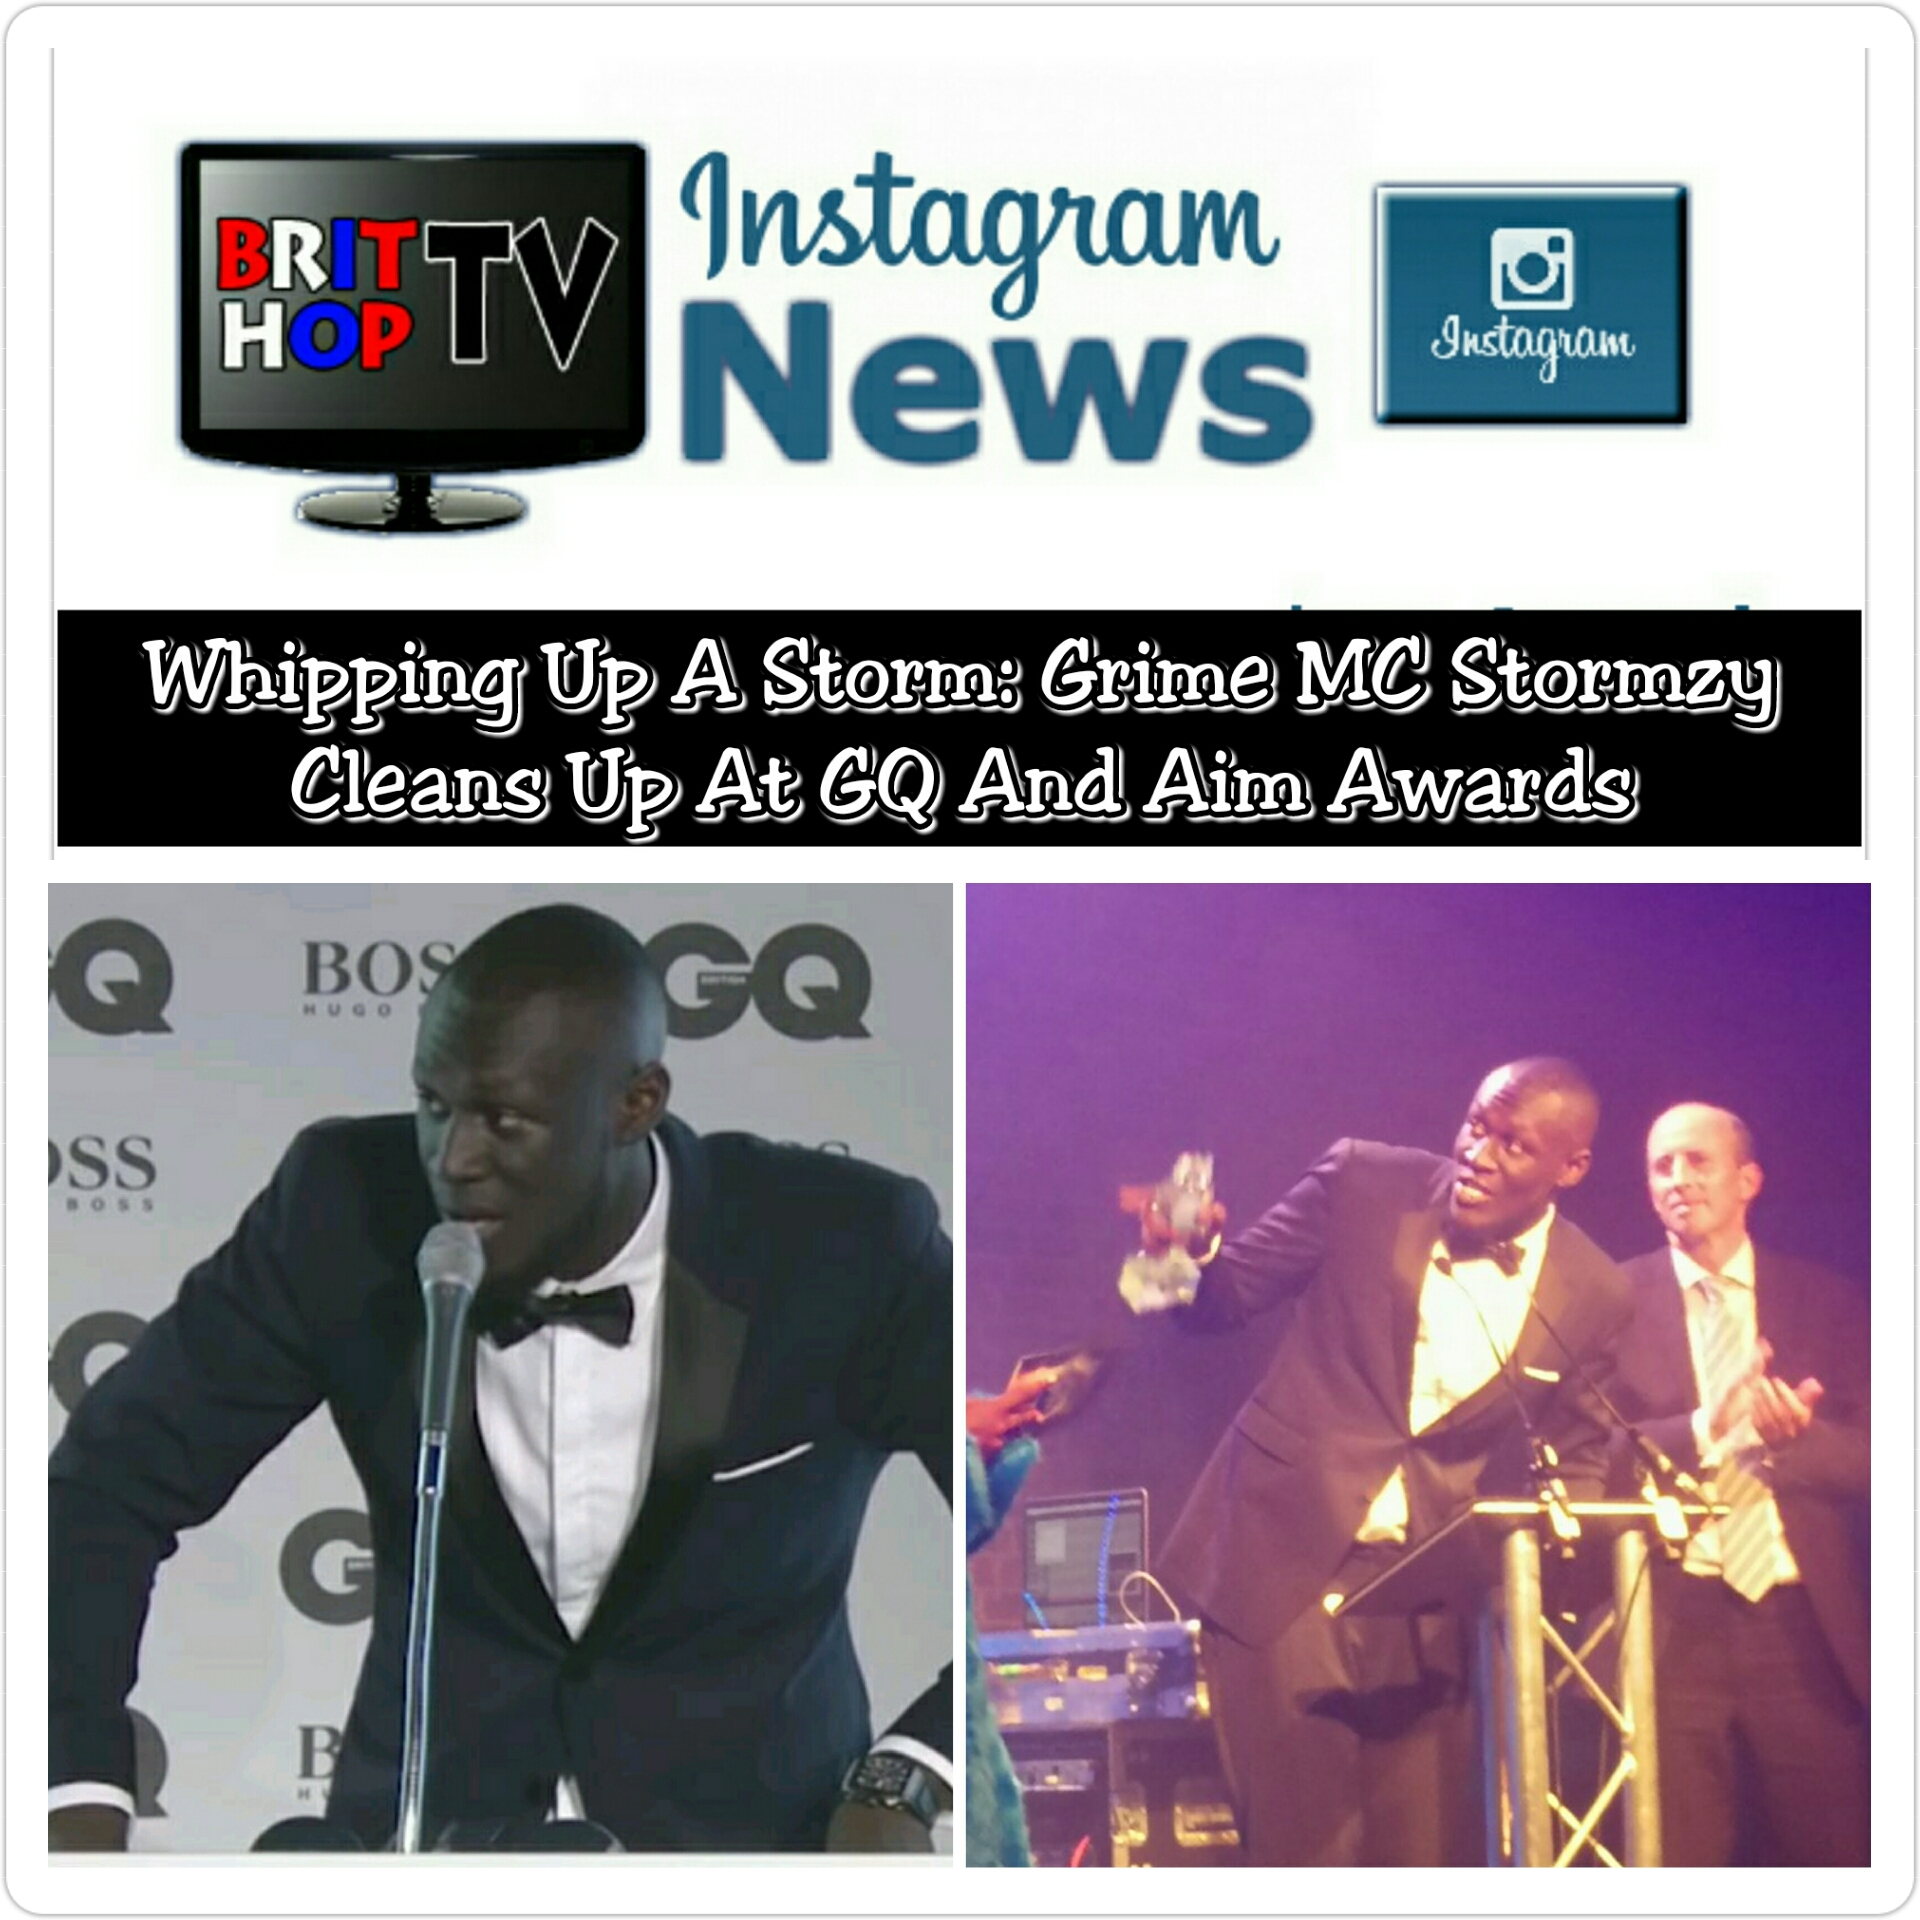 BRITHOPTV: [News] Whipping Up A Storm: Grime MC Stormzy (@Stormzy1) Cleans Up At GQ And AIM Awards | #Grime #Fashion #Music